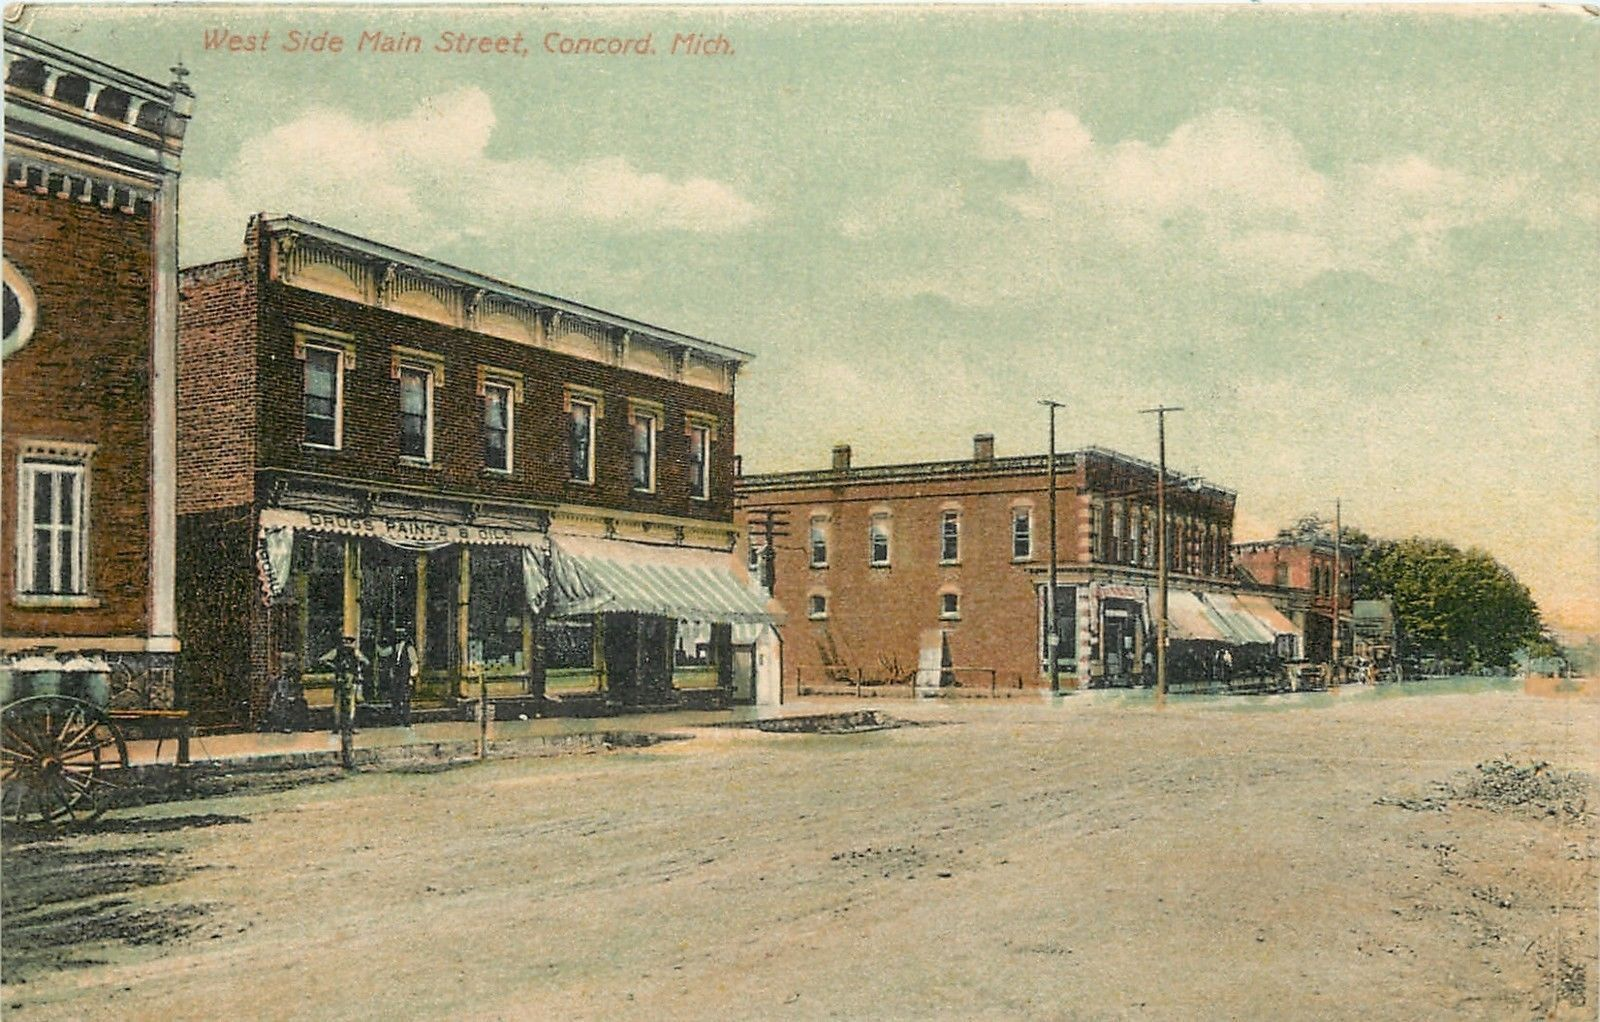 West Side Main st Concord Mich 1910